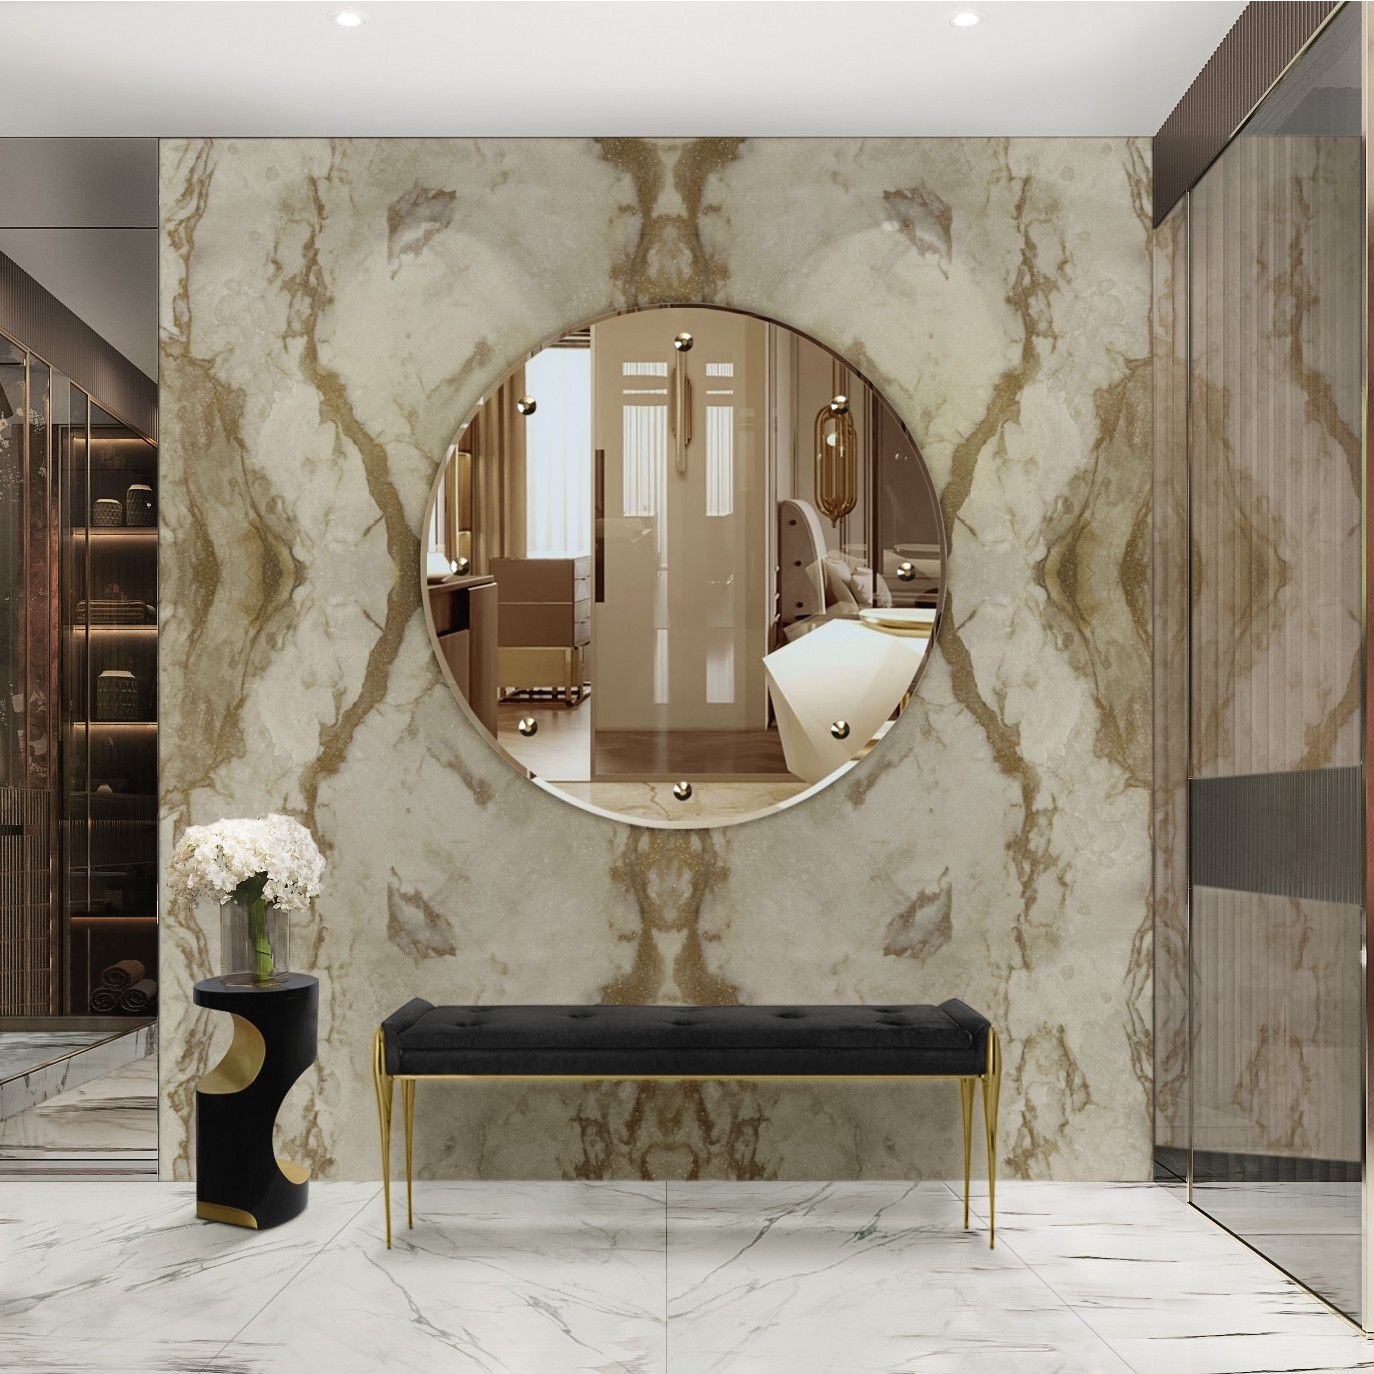 Bathroom Mirrors To Get A Luxurious Decor bathroom mirrors Bathroom Mirrors To Get A Luxurious Decor sophisticated and majestic master suite with design vanity mirror and bench